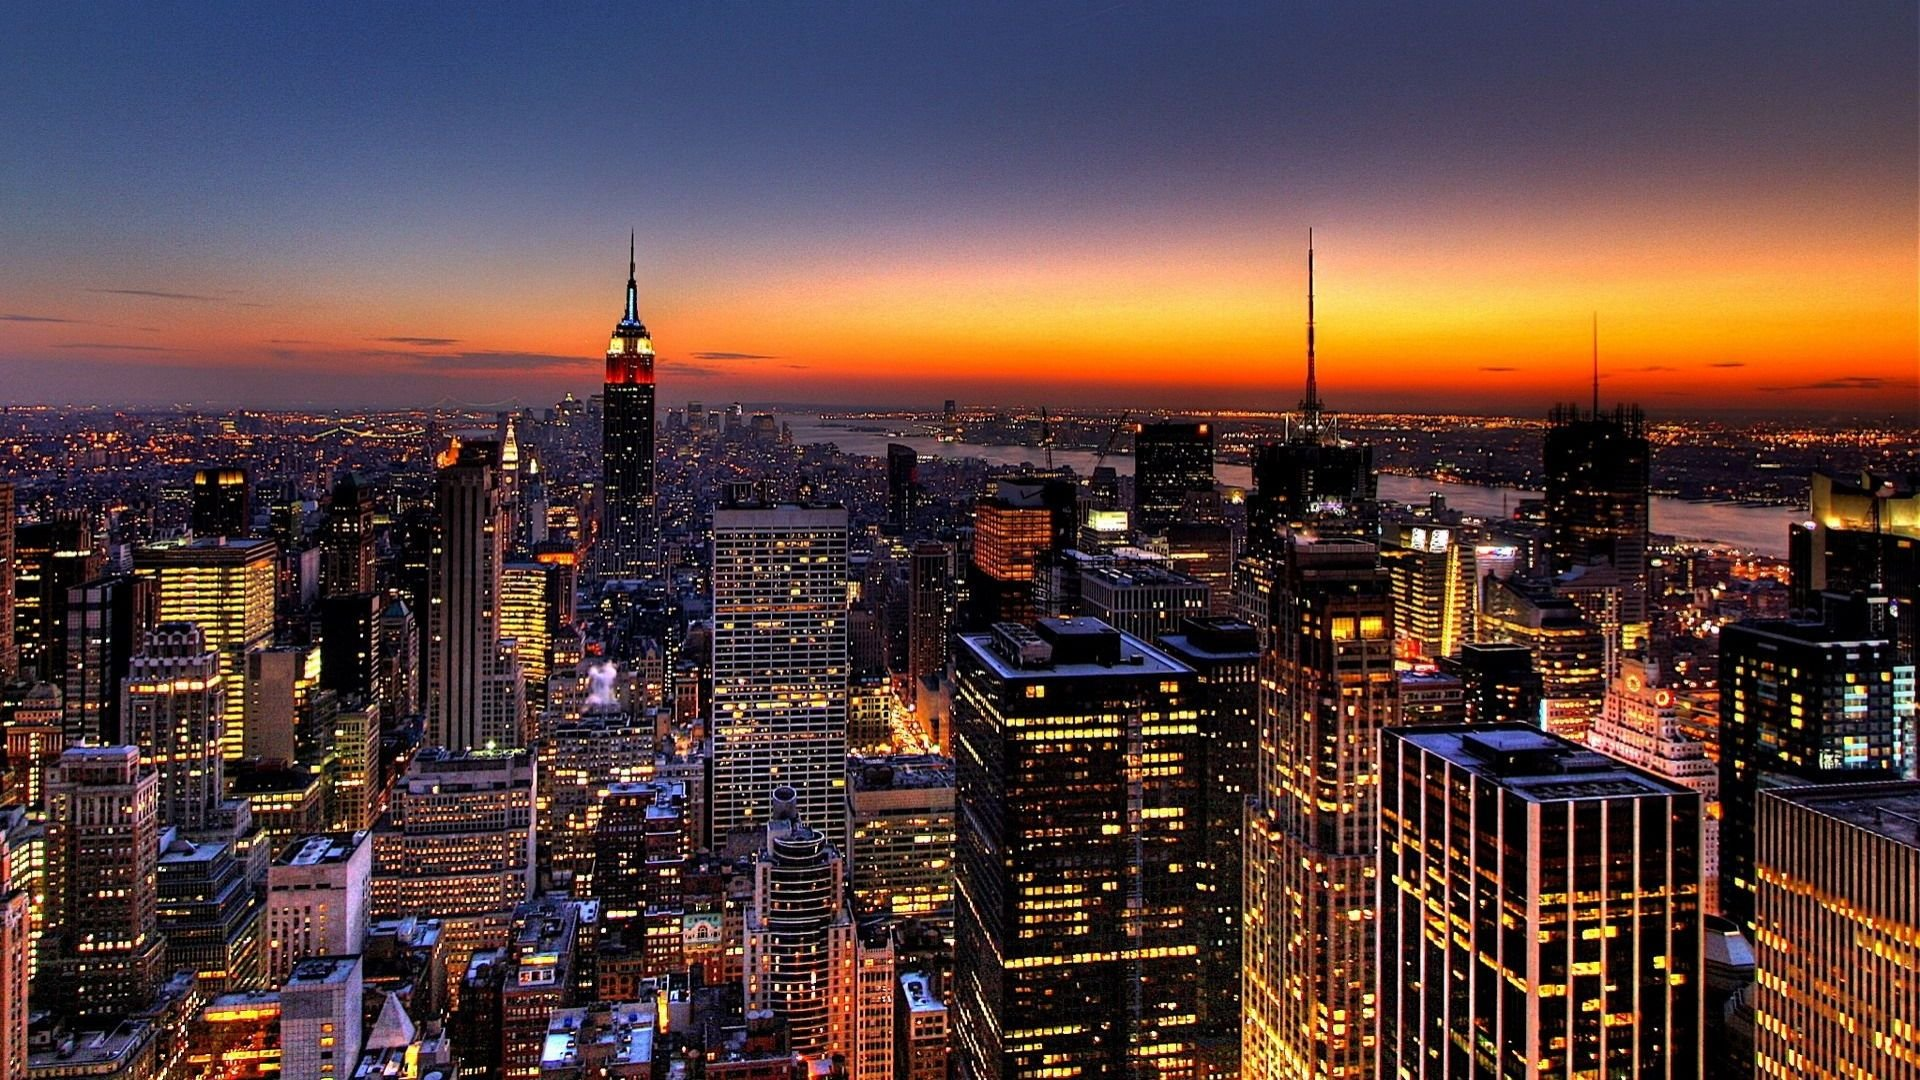 sky scraping new york city us at night wallpapers download